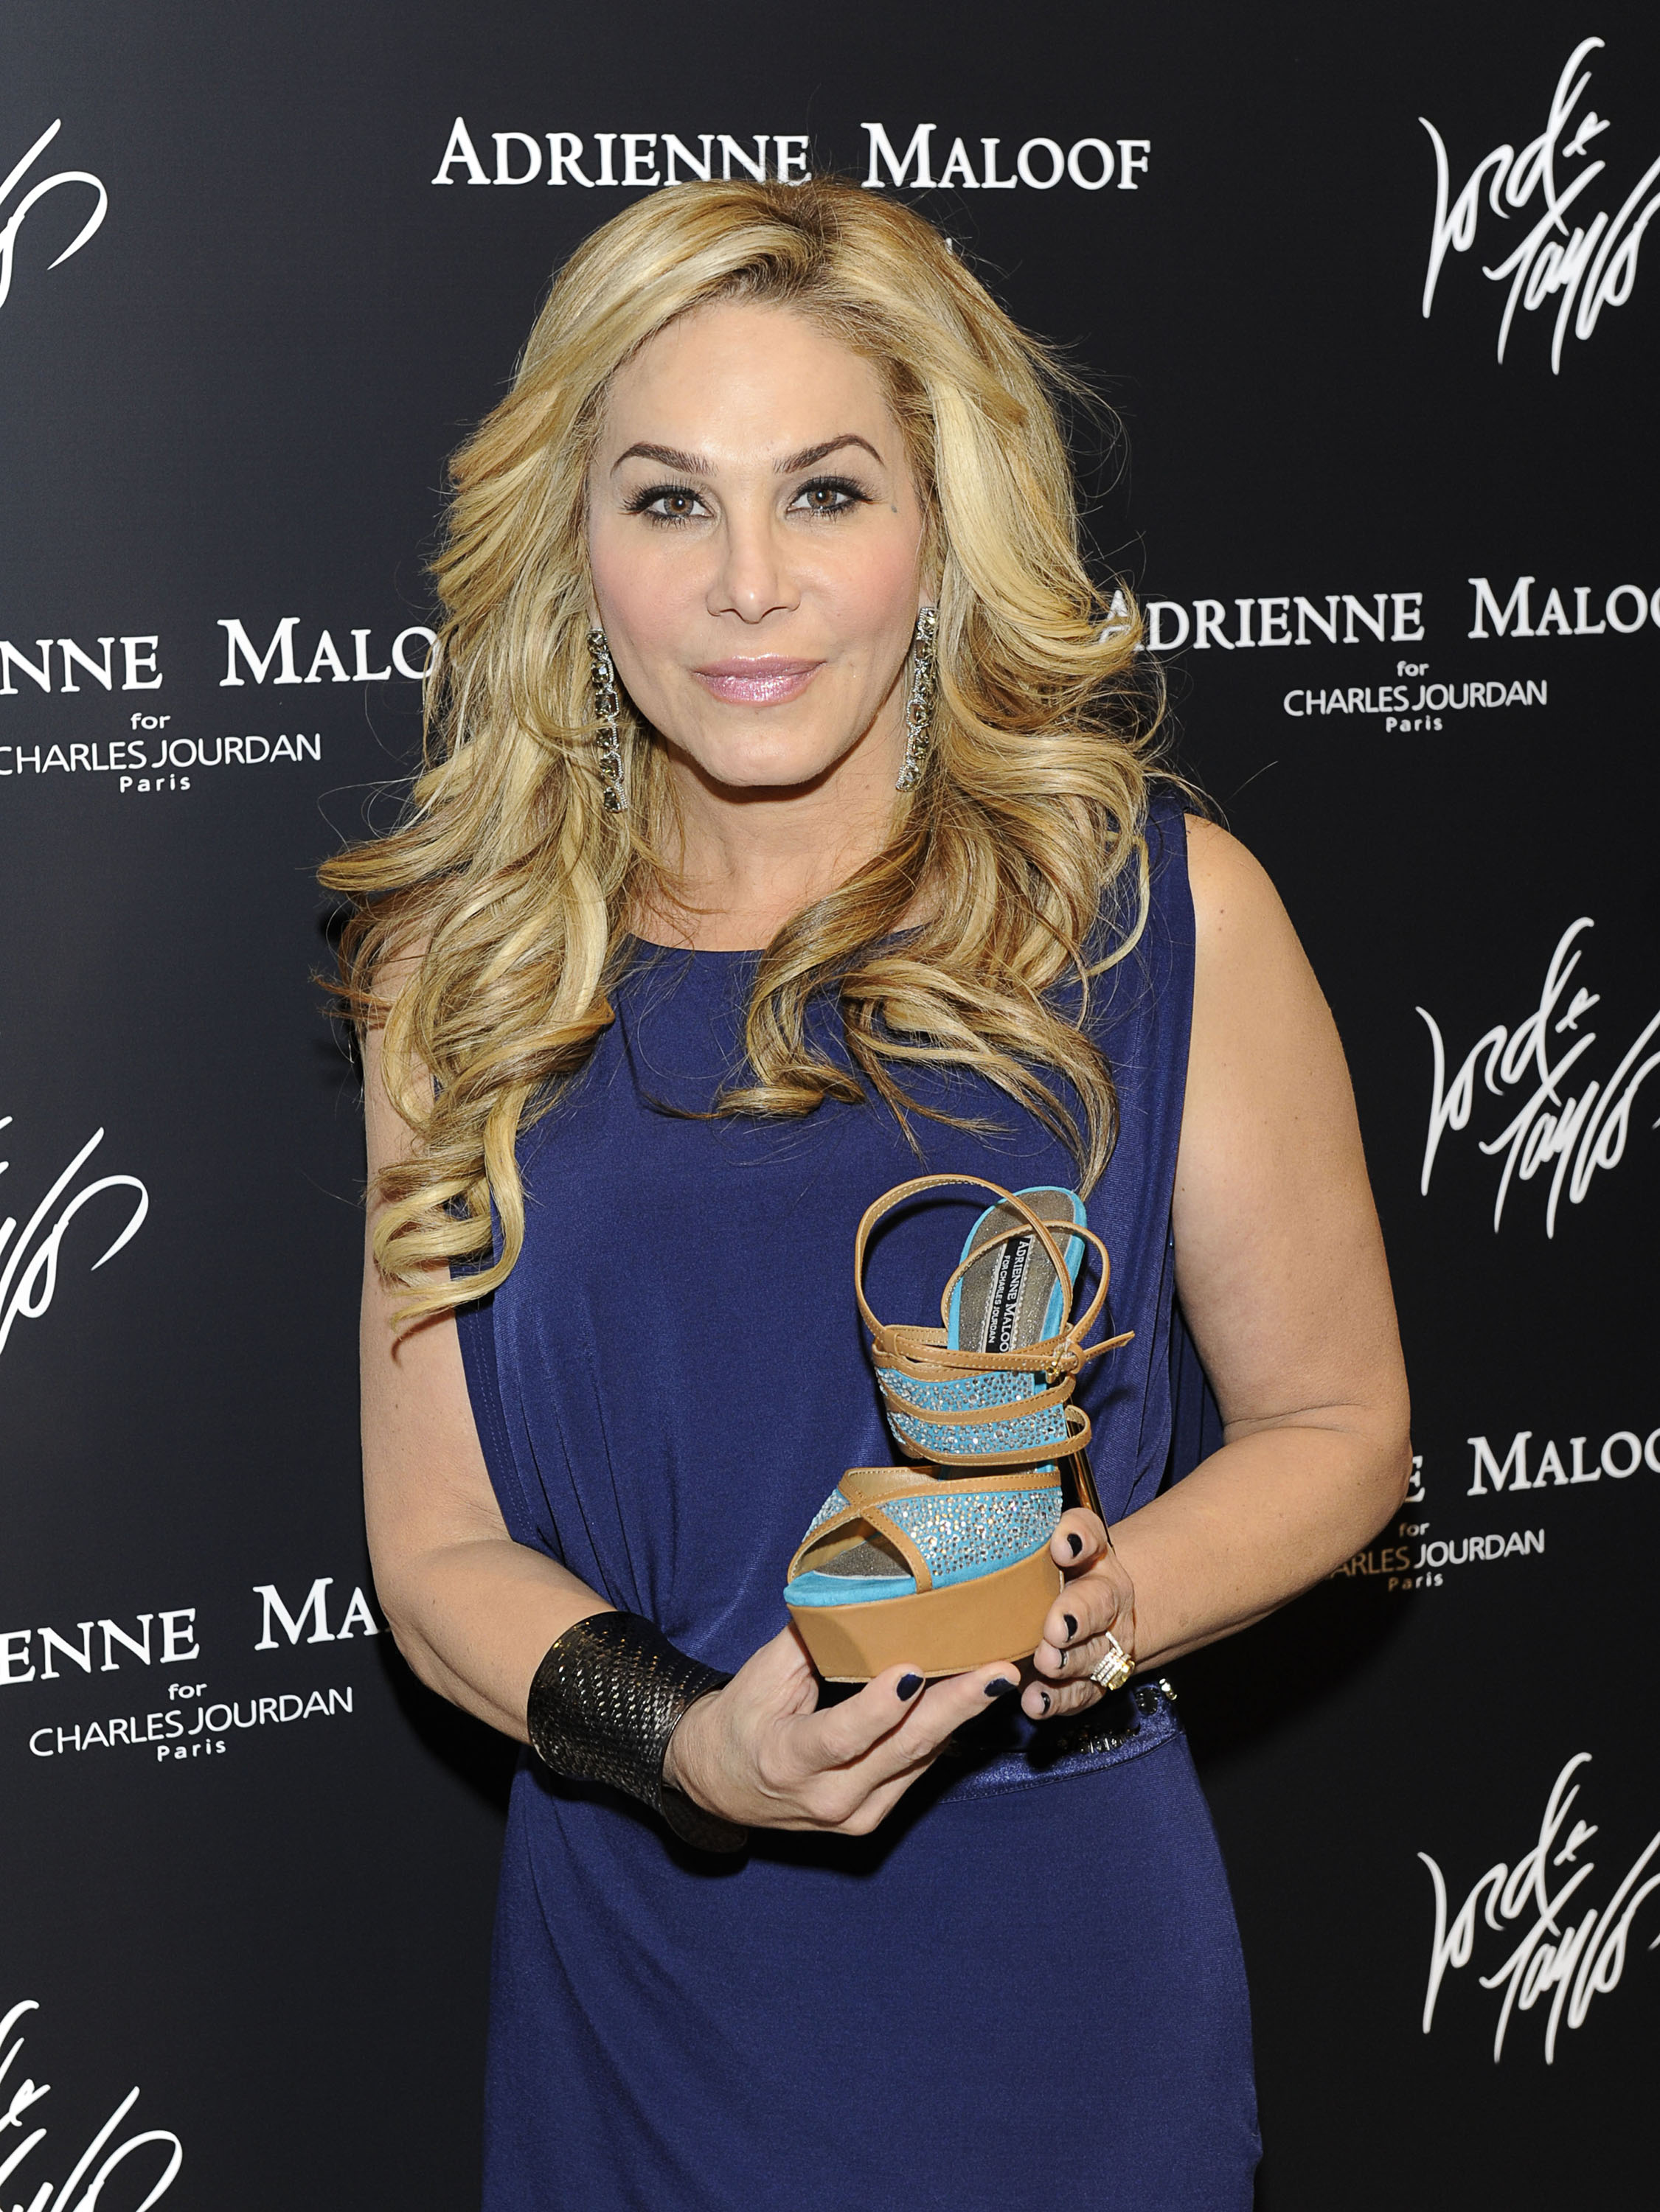 Adrienne Maloof Shoes Part two: adrienne maloof talks rhobh, family